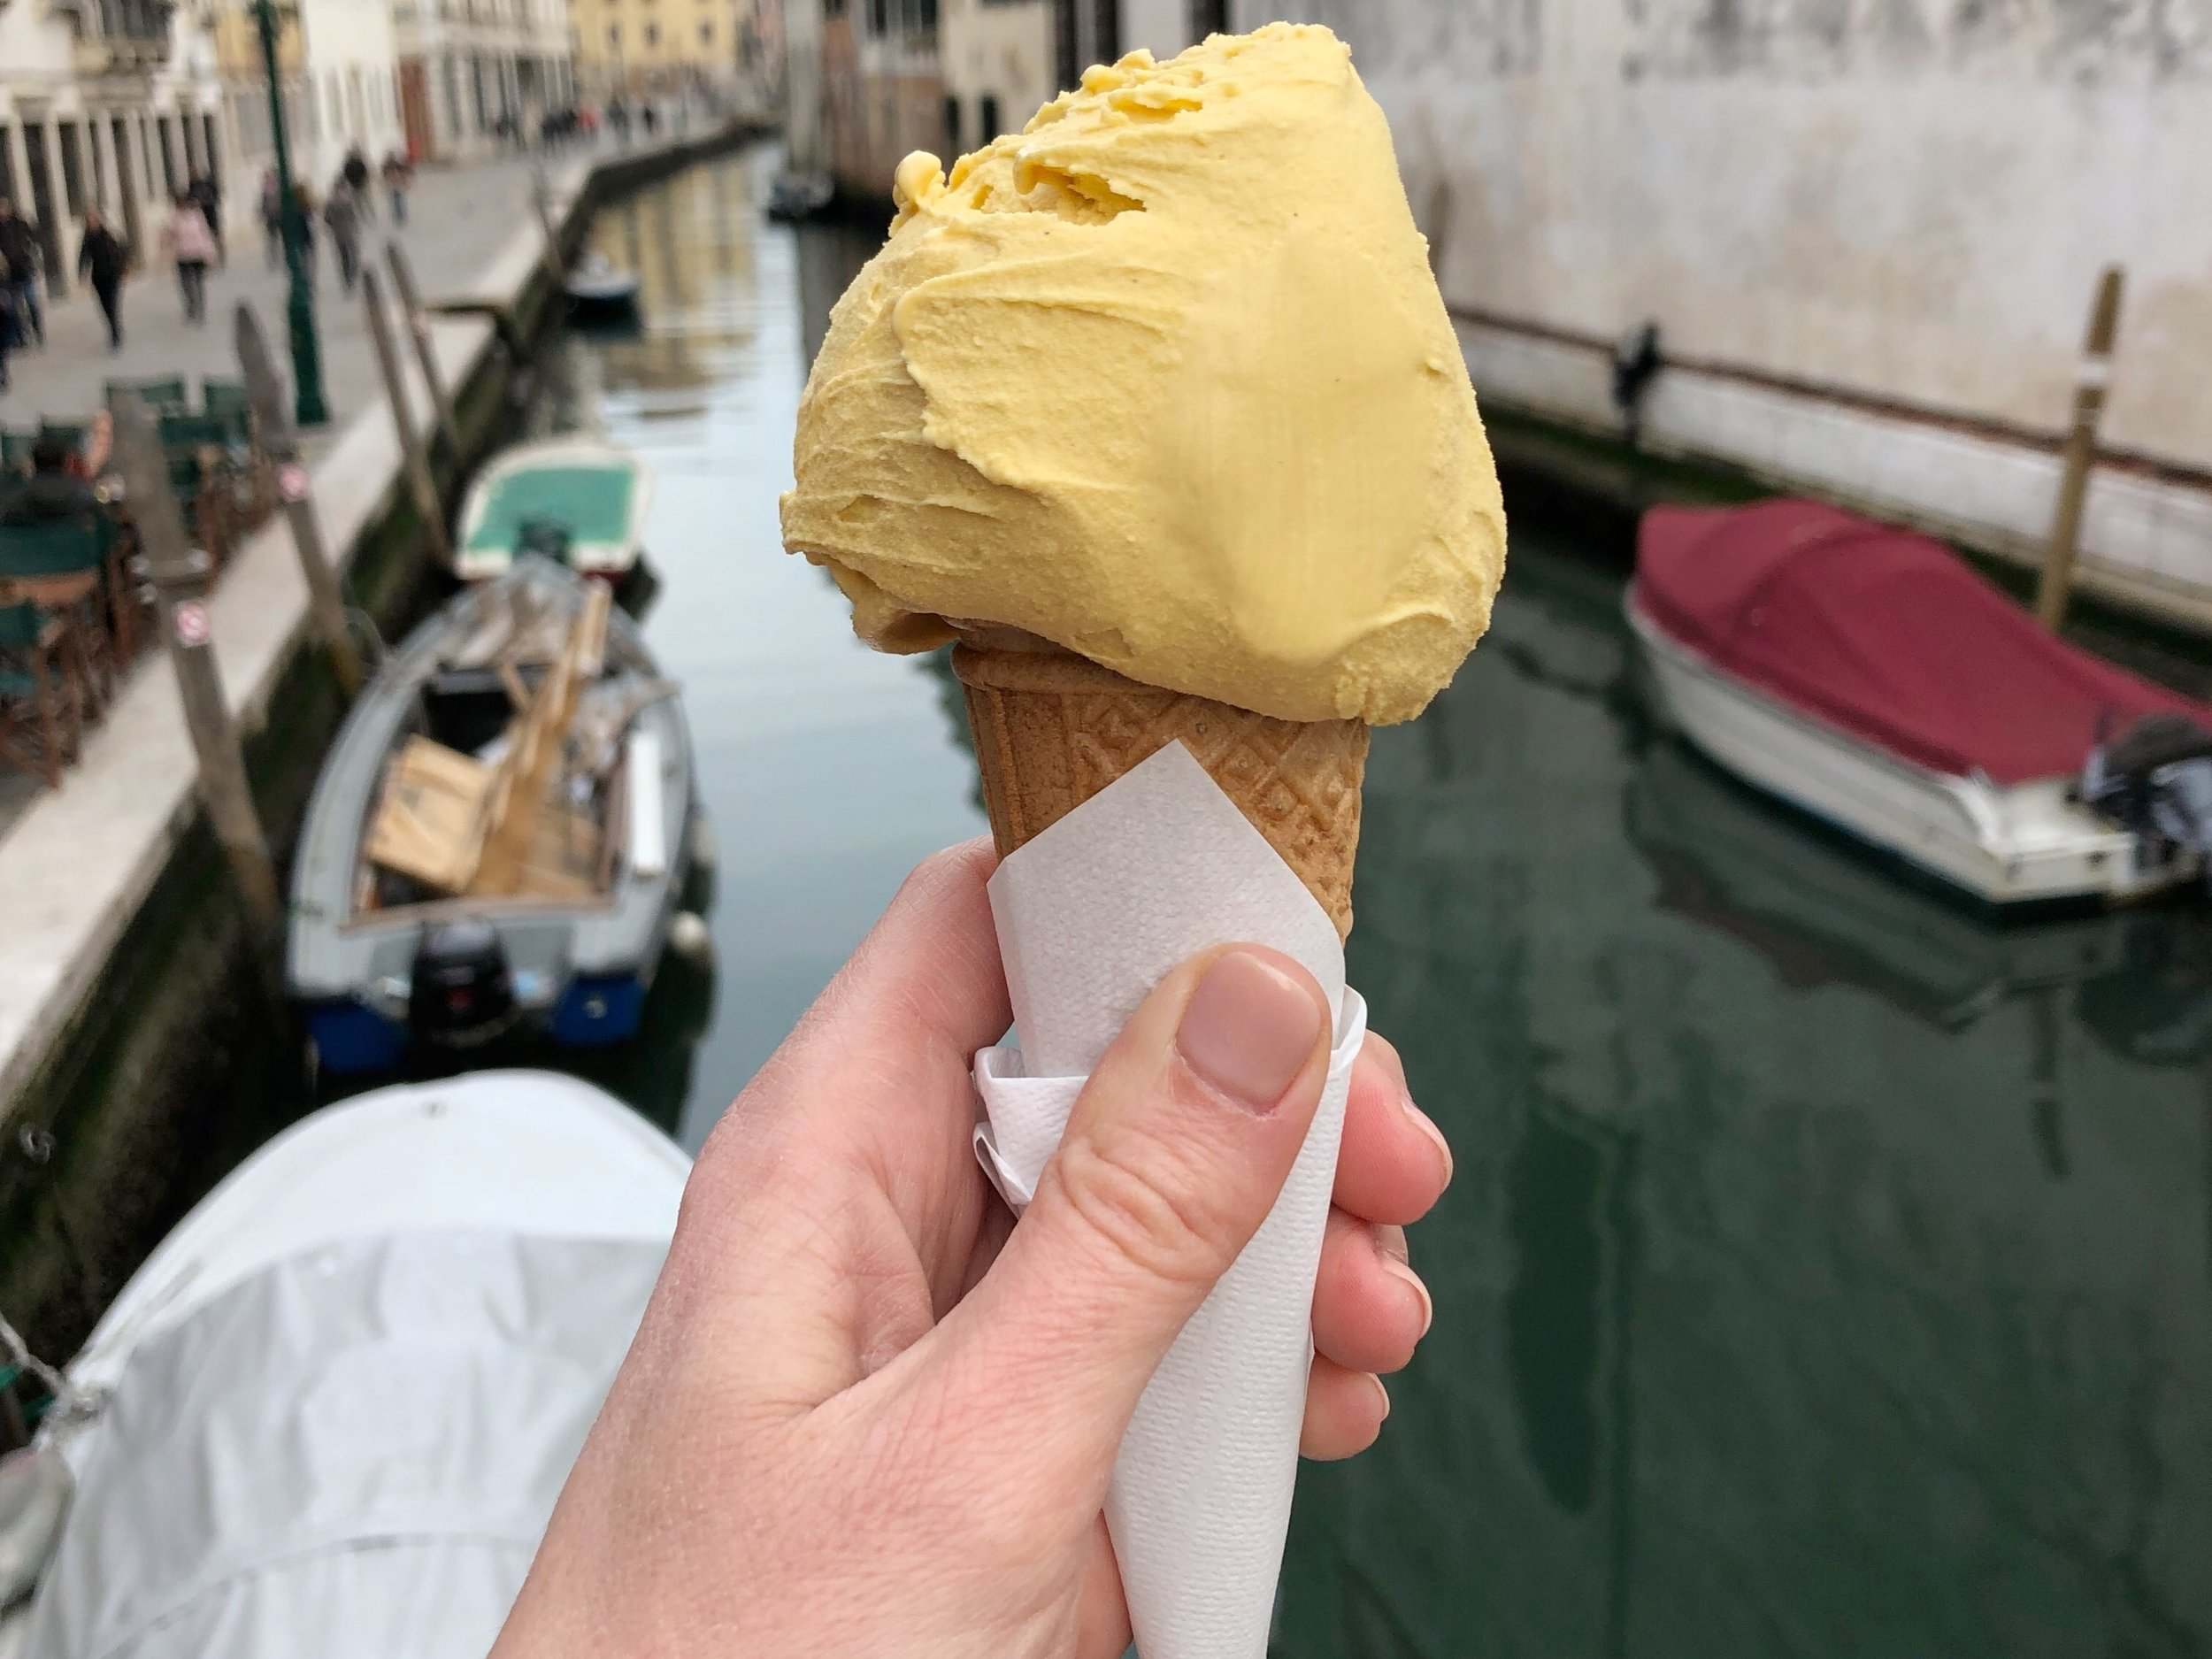 A weekend Guide to Venice